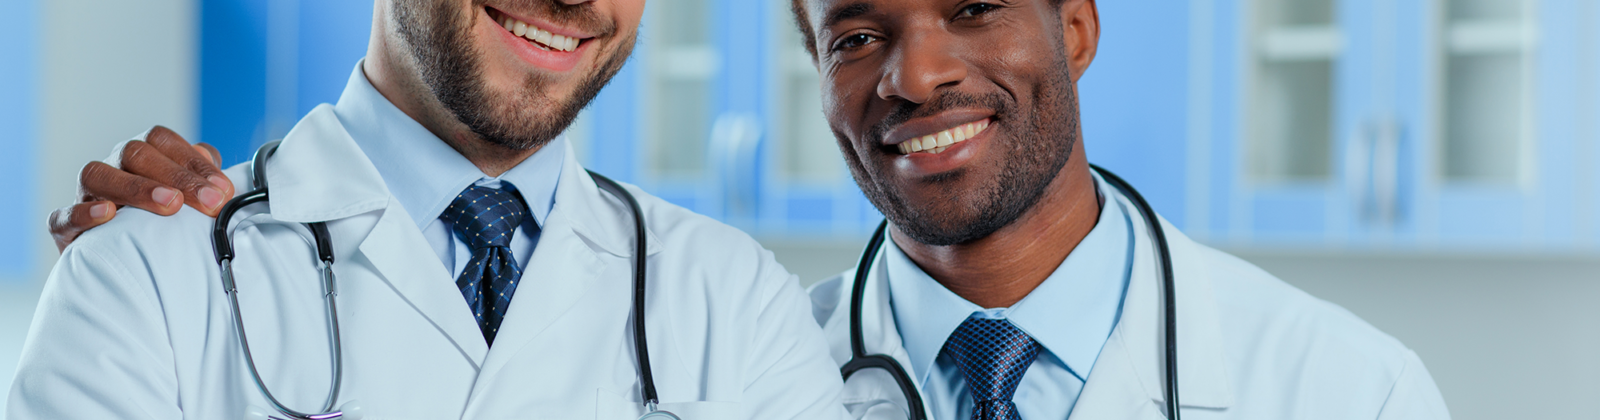 MMC Financial Group has experience working with private practice medical groups